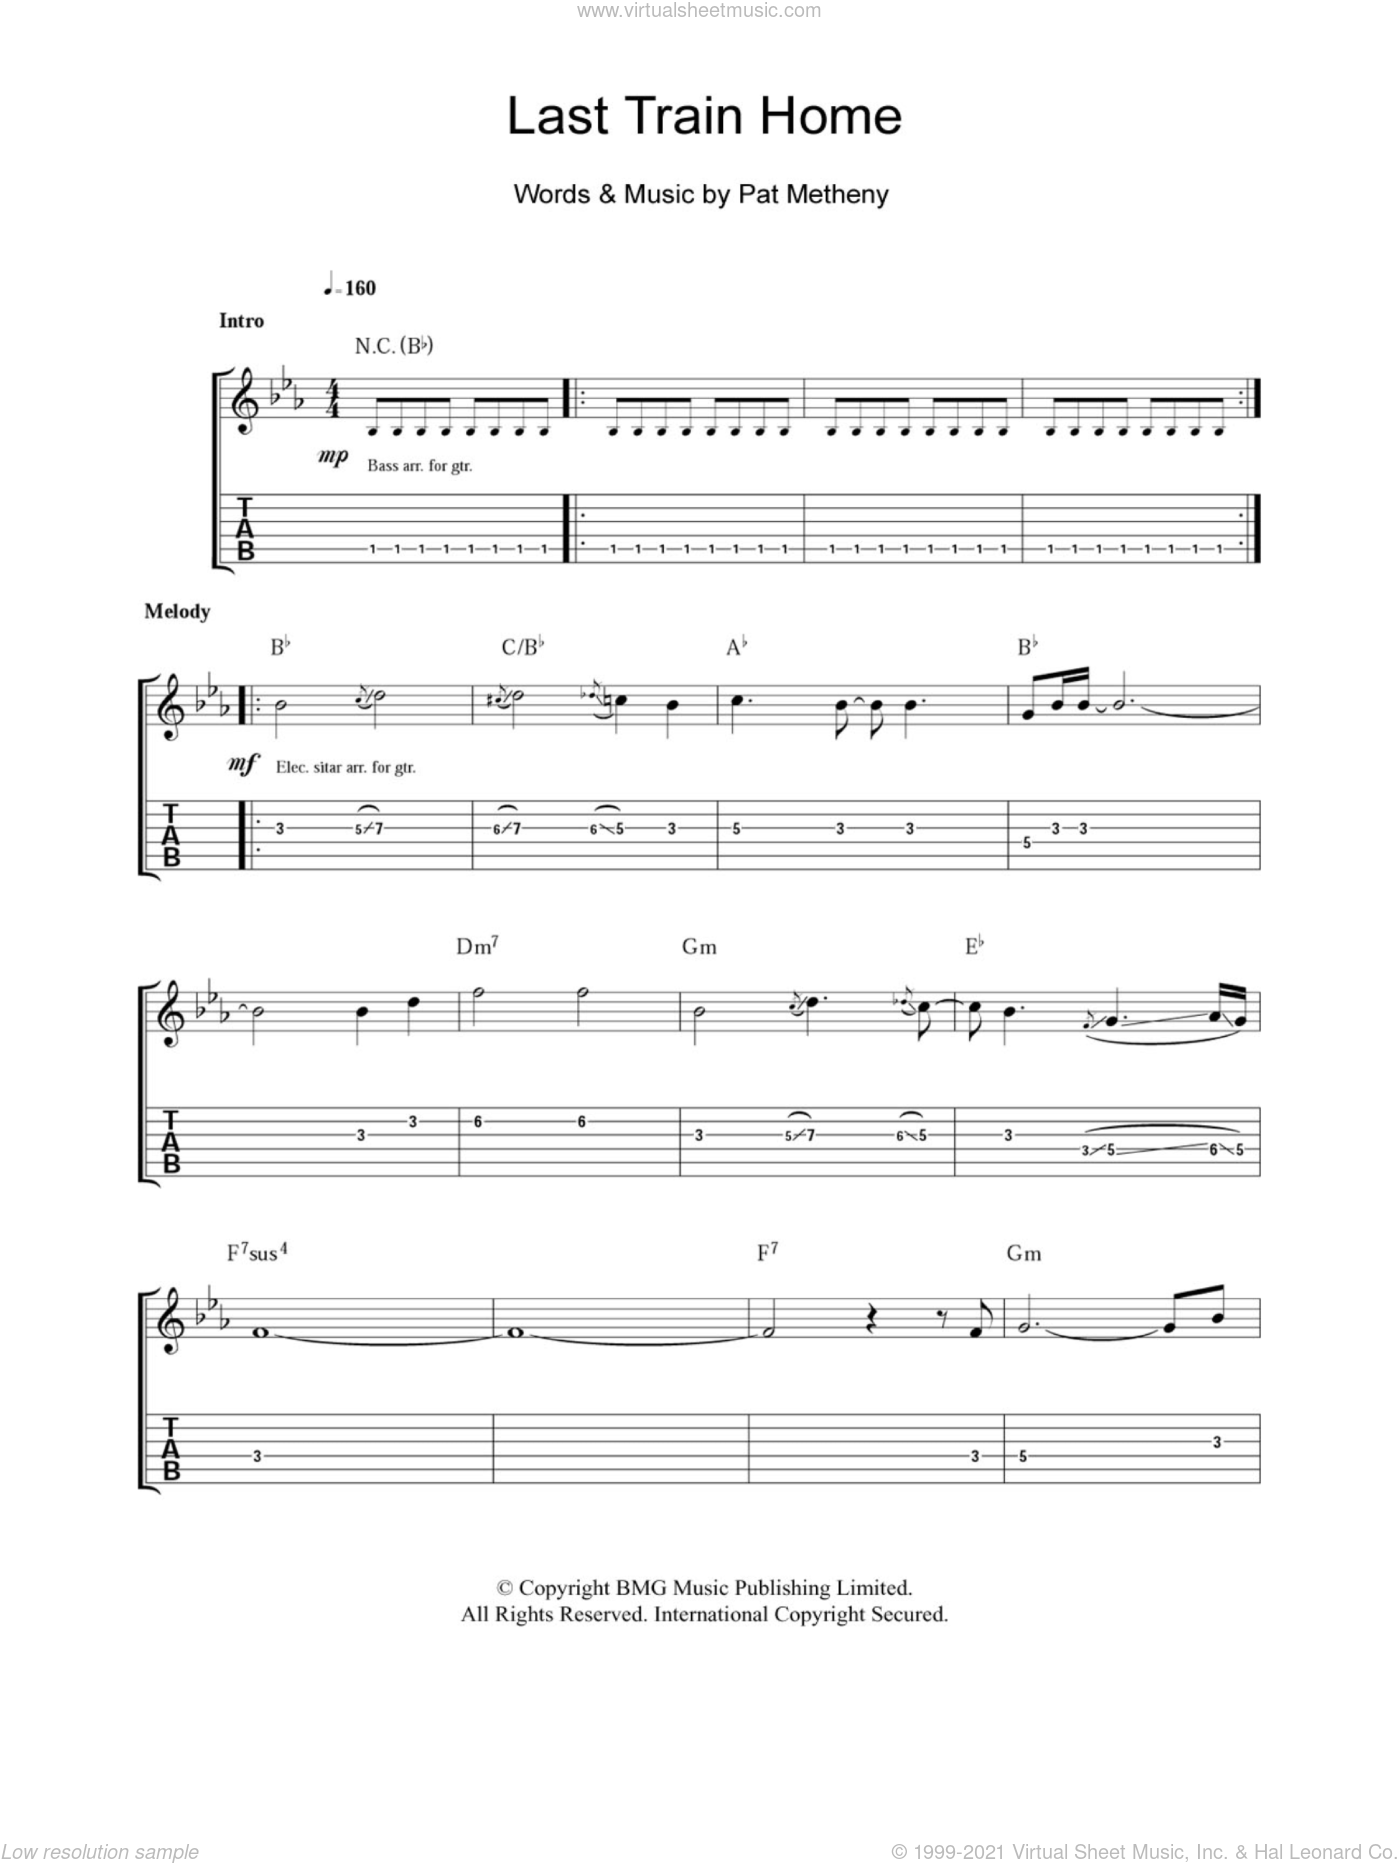 Last Train Home sheet music for guitar (tablature) by Pat Metheny. Score Image Preview.